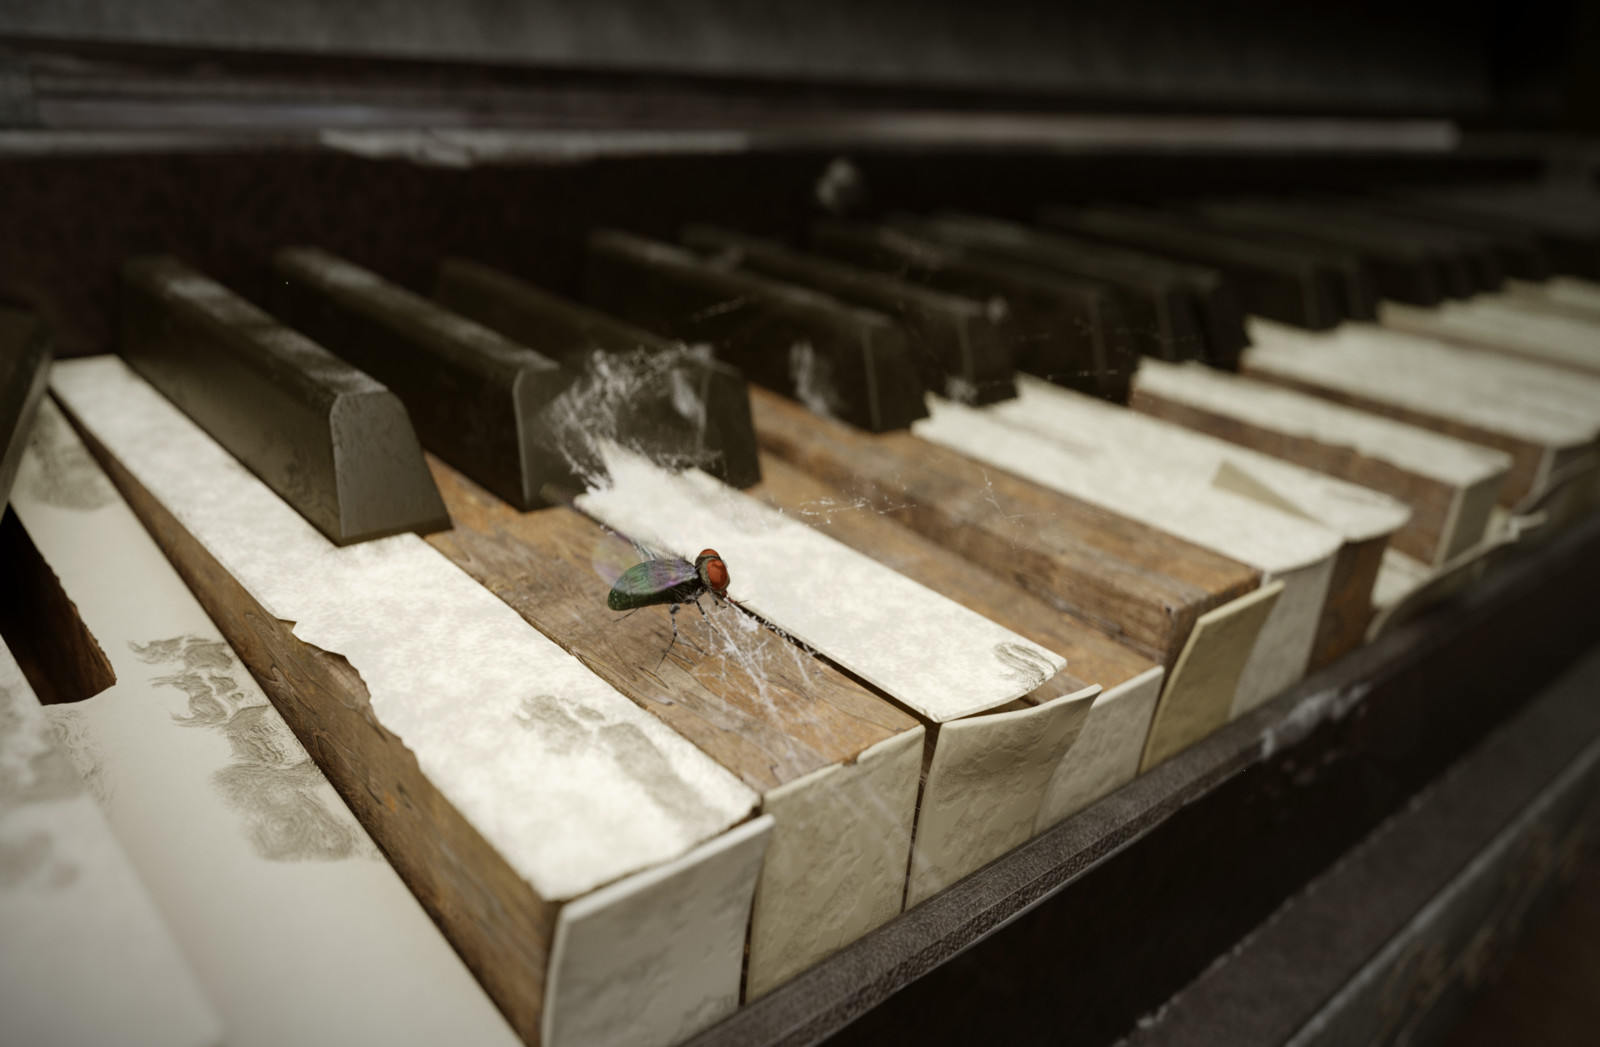 Fly on an old piano